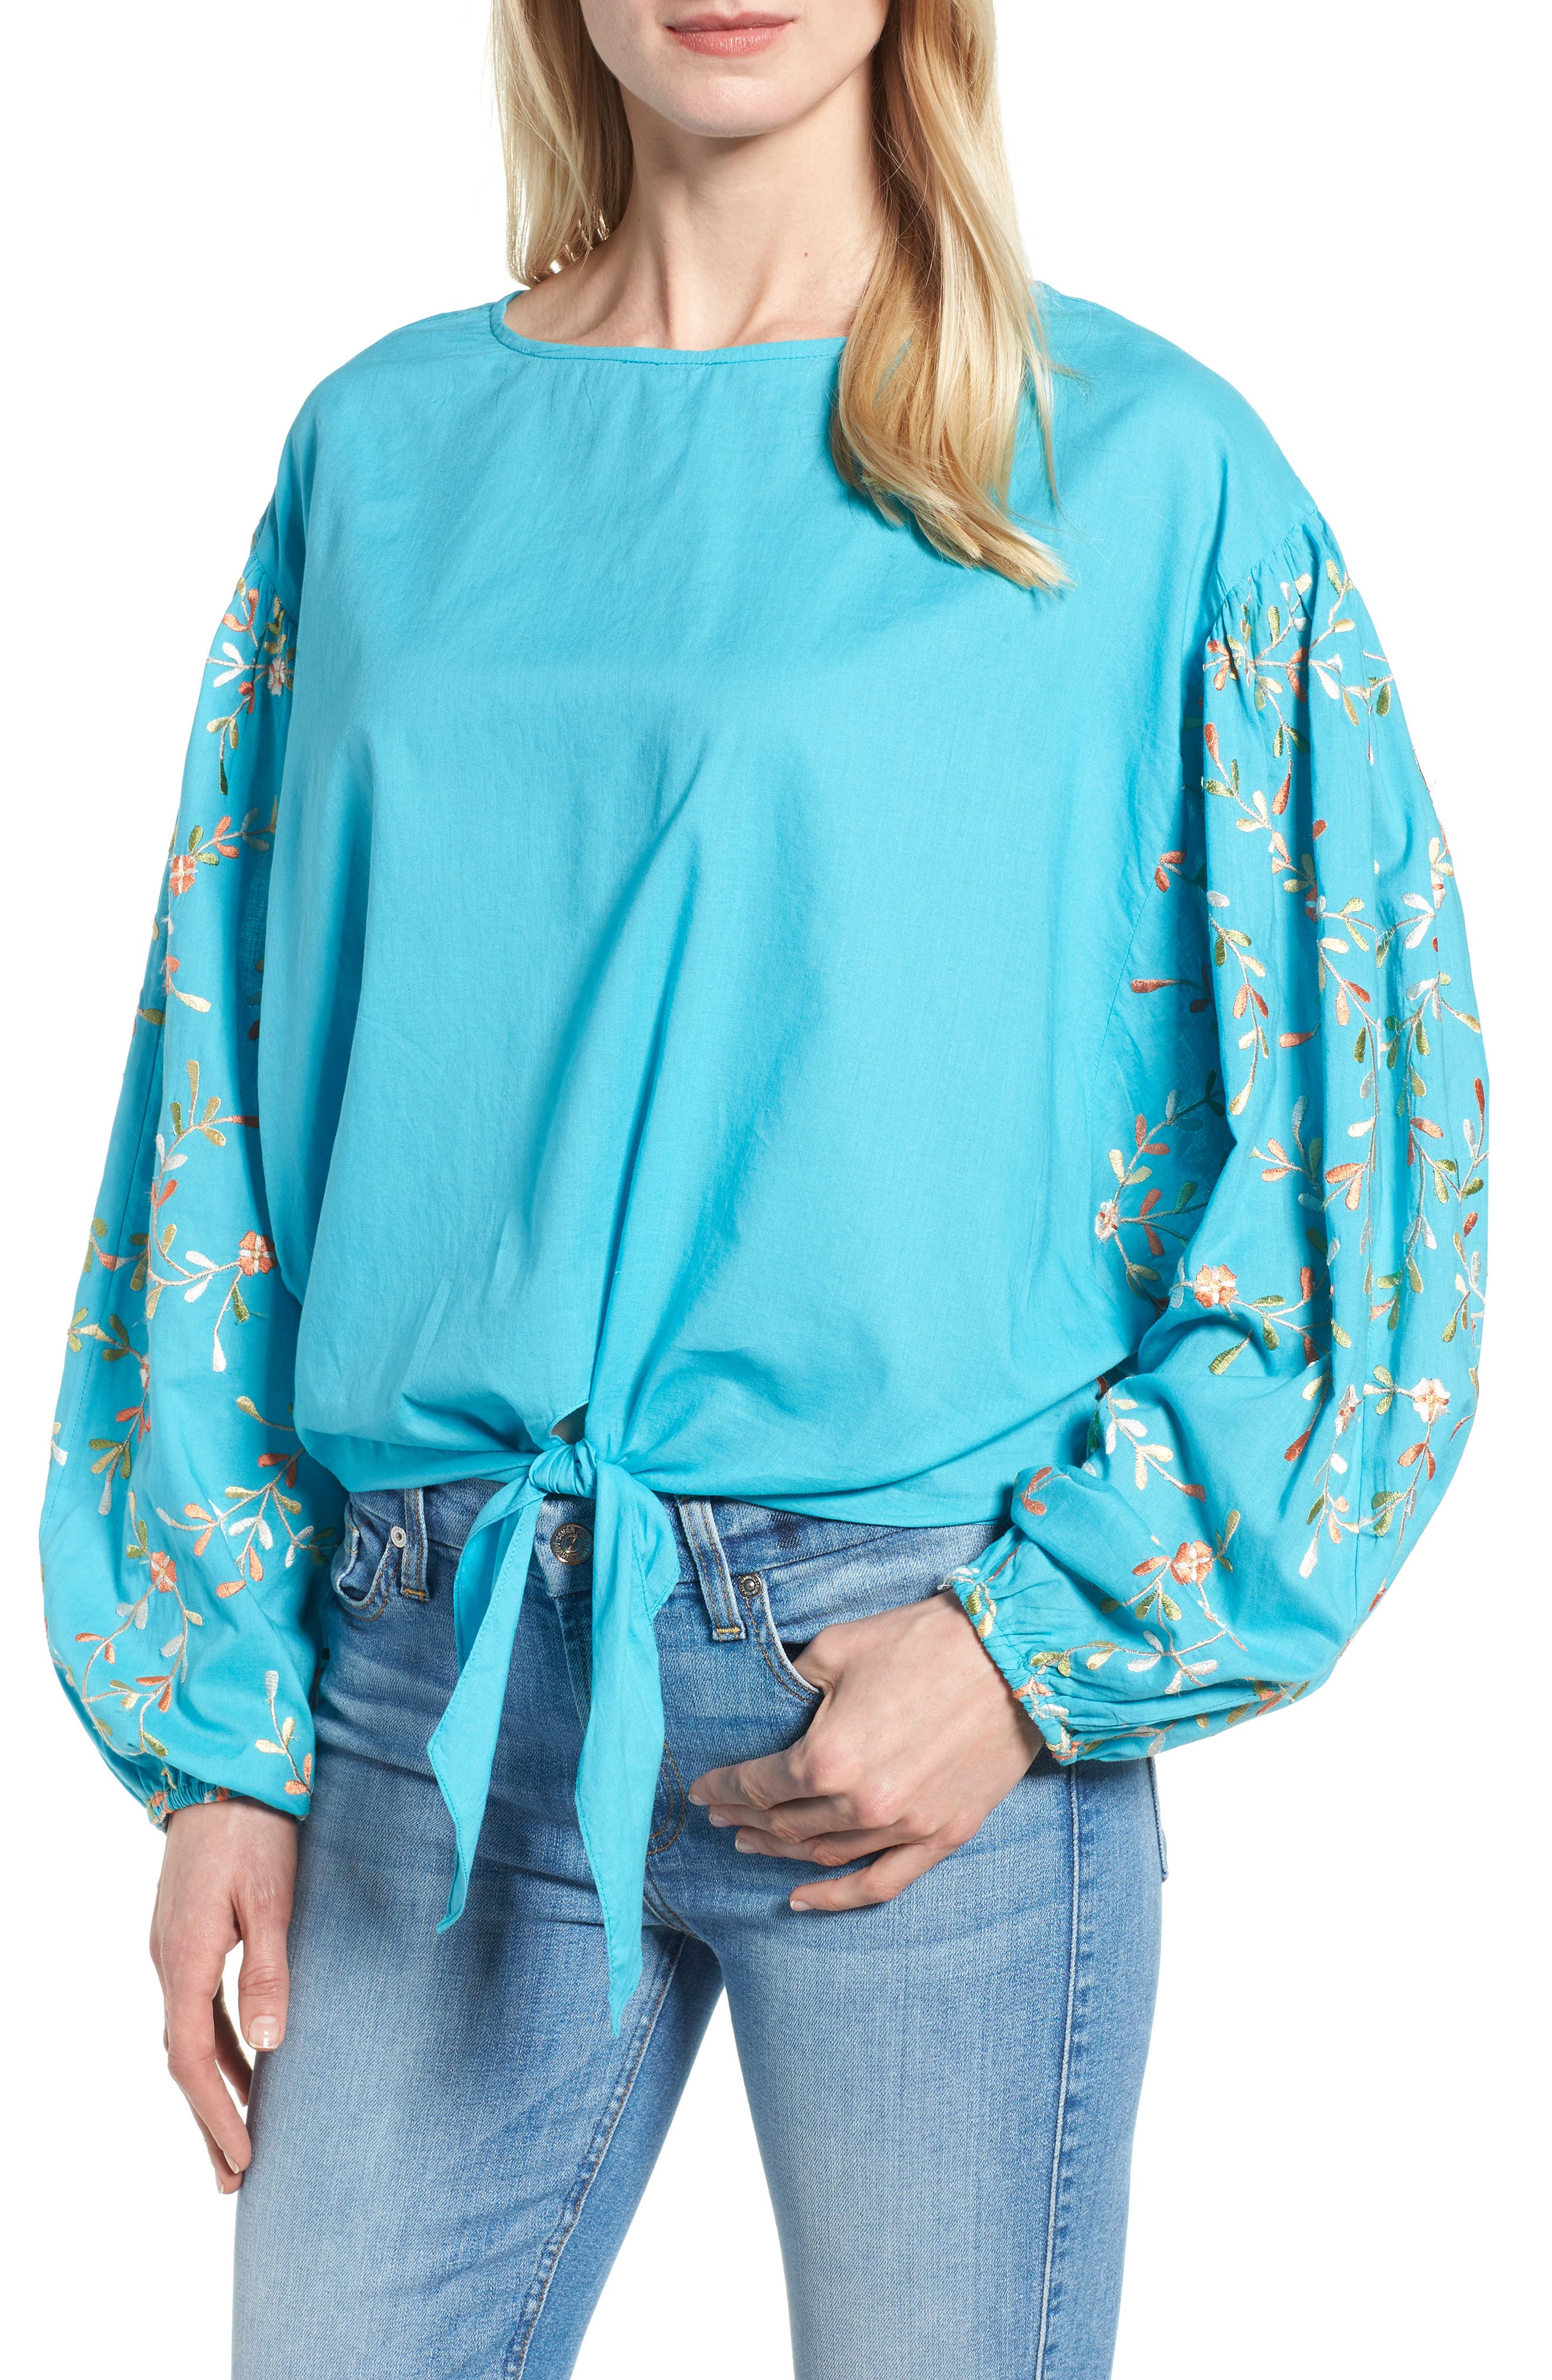 KAS NEW YORK COLINE FRONT TIE EMBROIDERED SLEEVE BLOUSE